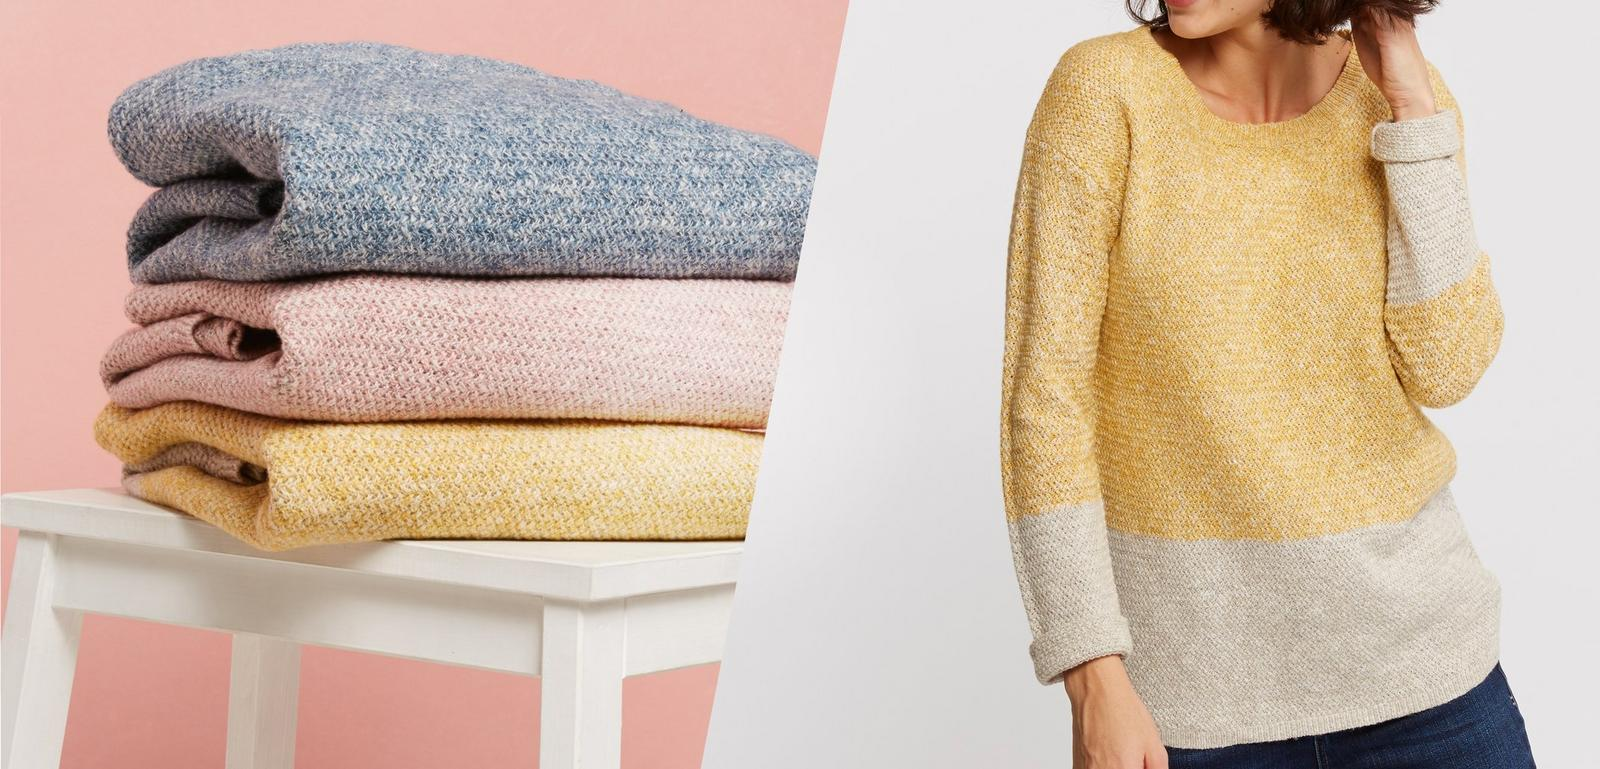 Image of stacked jumpers and a female model wearing the Harpenden Jumper in daffodil